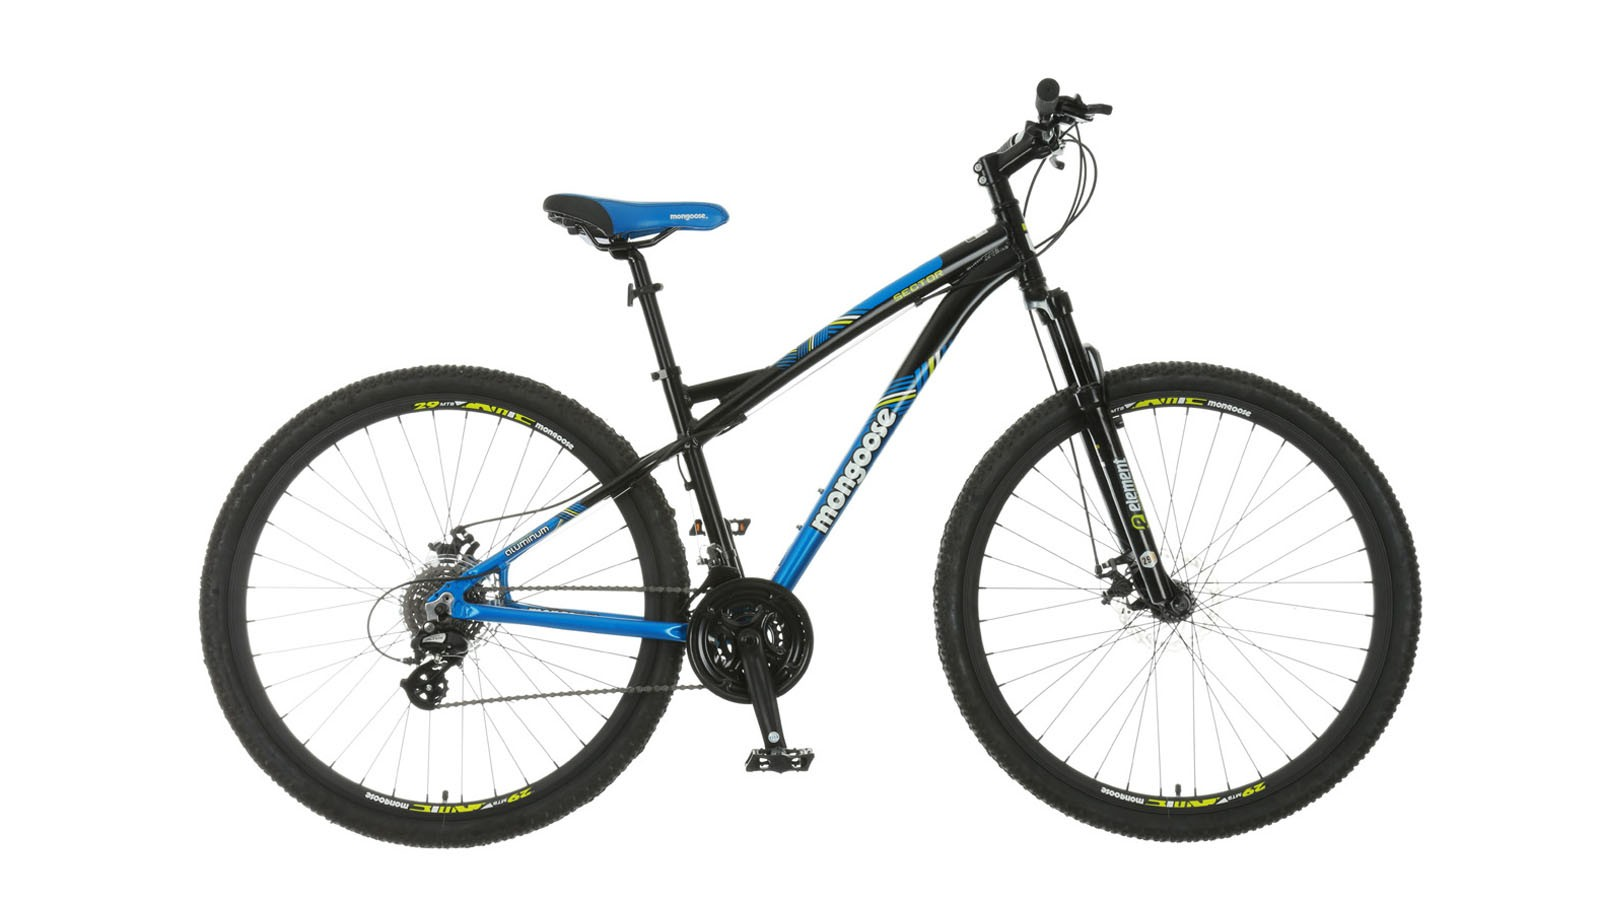 The Mongoose Sector 29in hardtail mountain bike